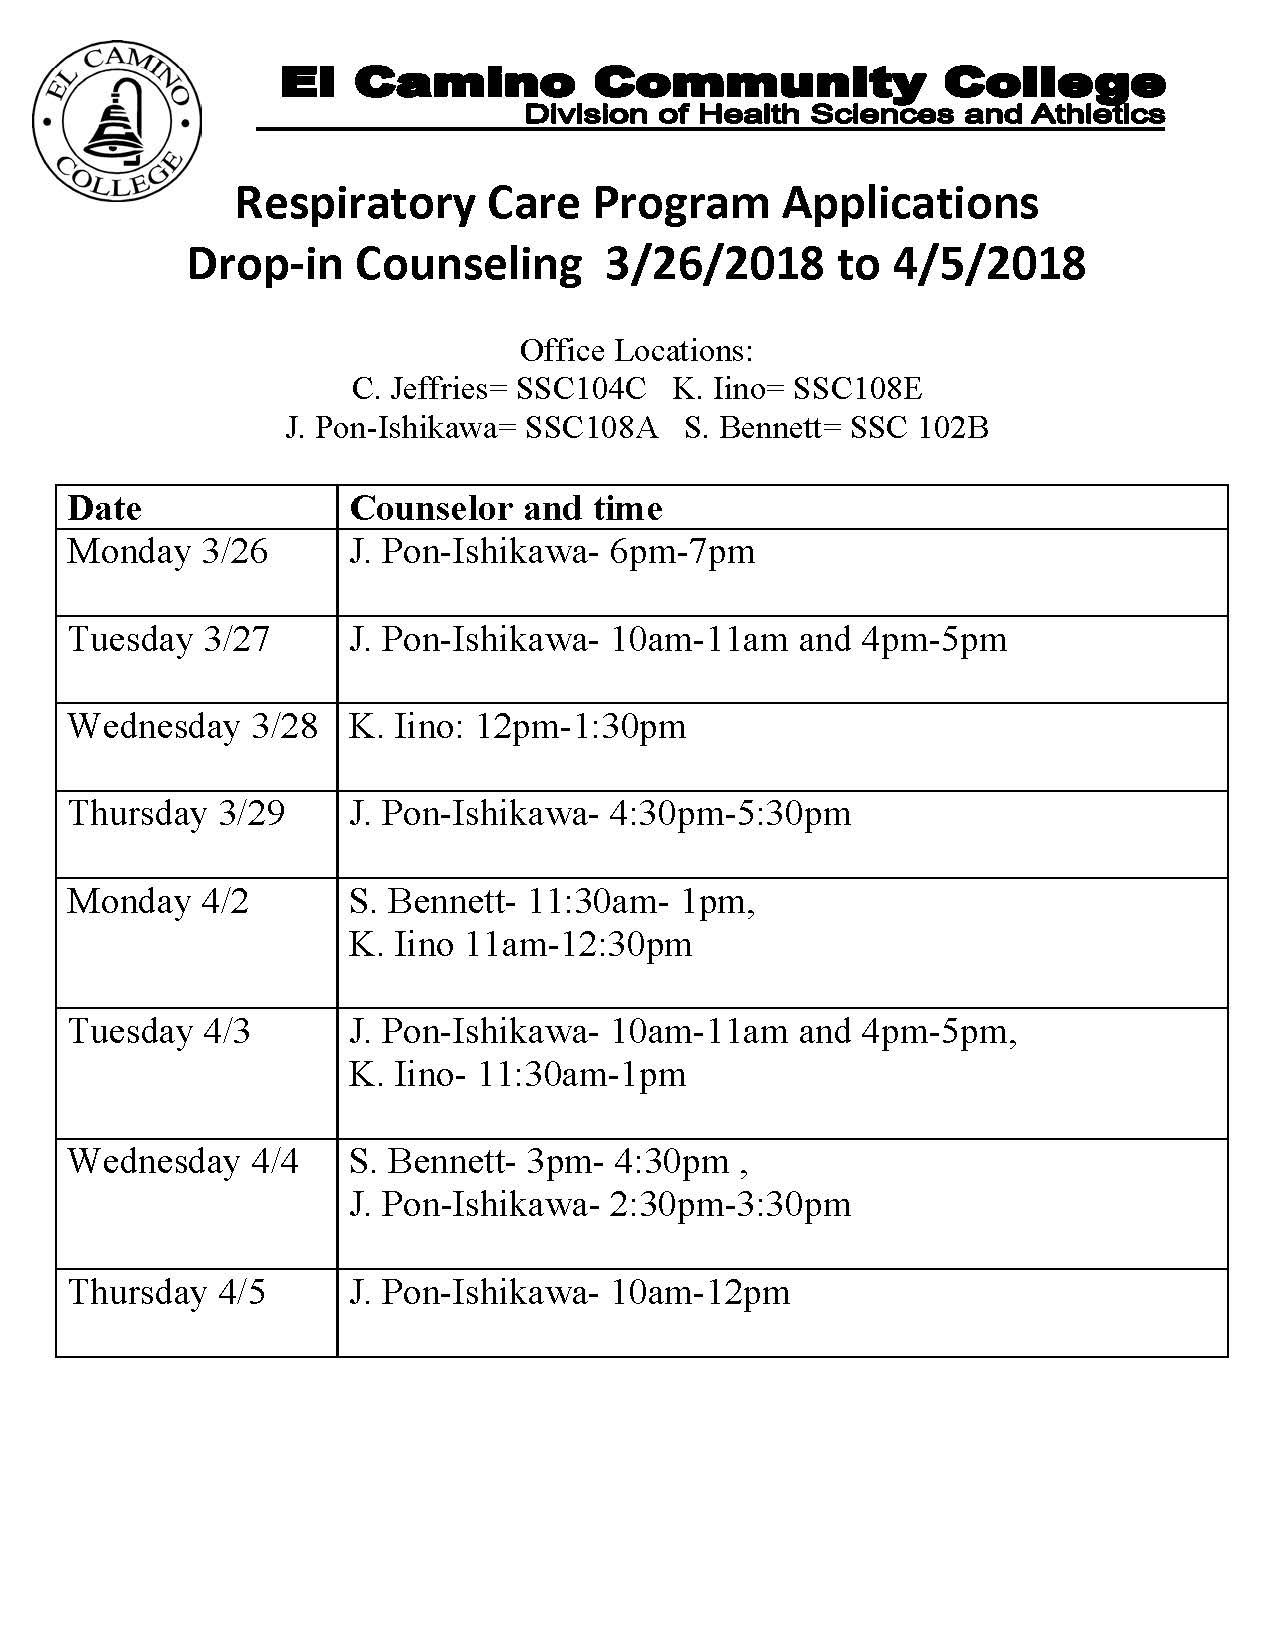 Respiratory Care Application Spring 2018 Counseling Hours